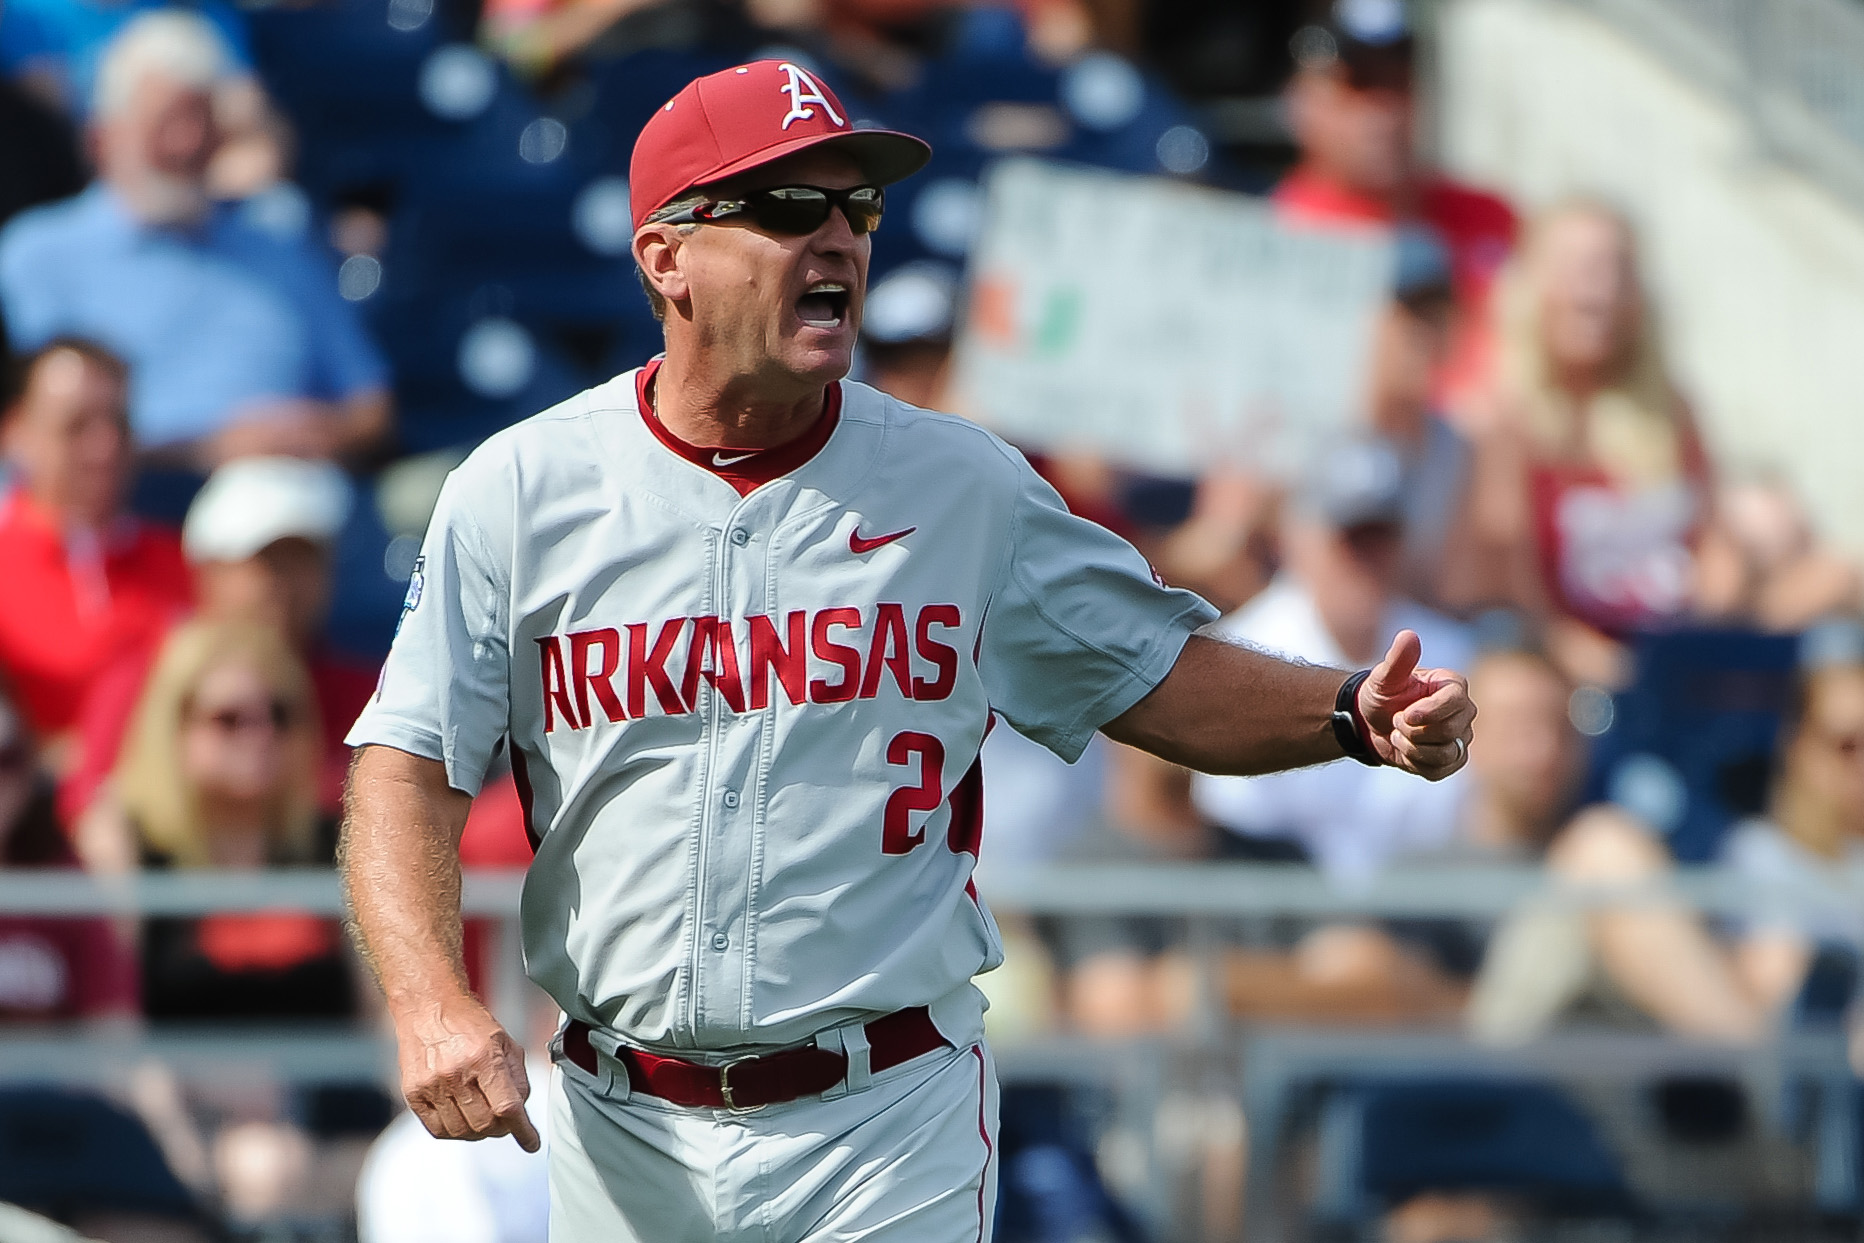 8623230-ncaa-baseball-college-world-series-arkansas-vs-miami